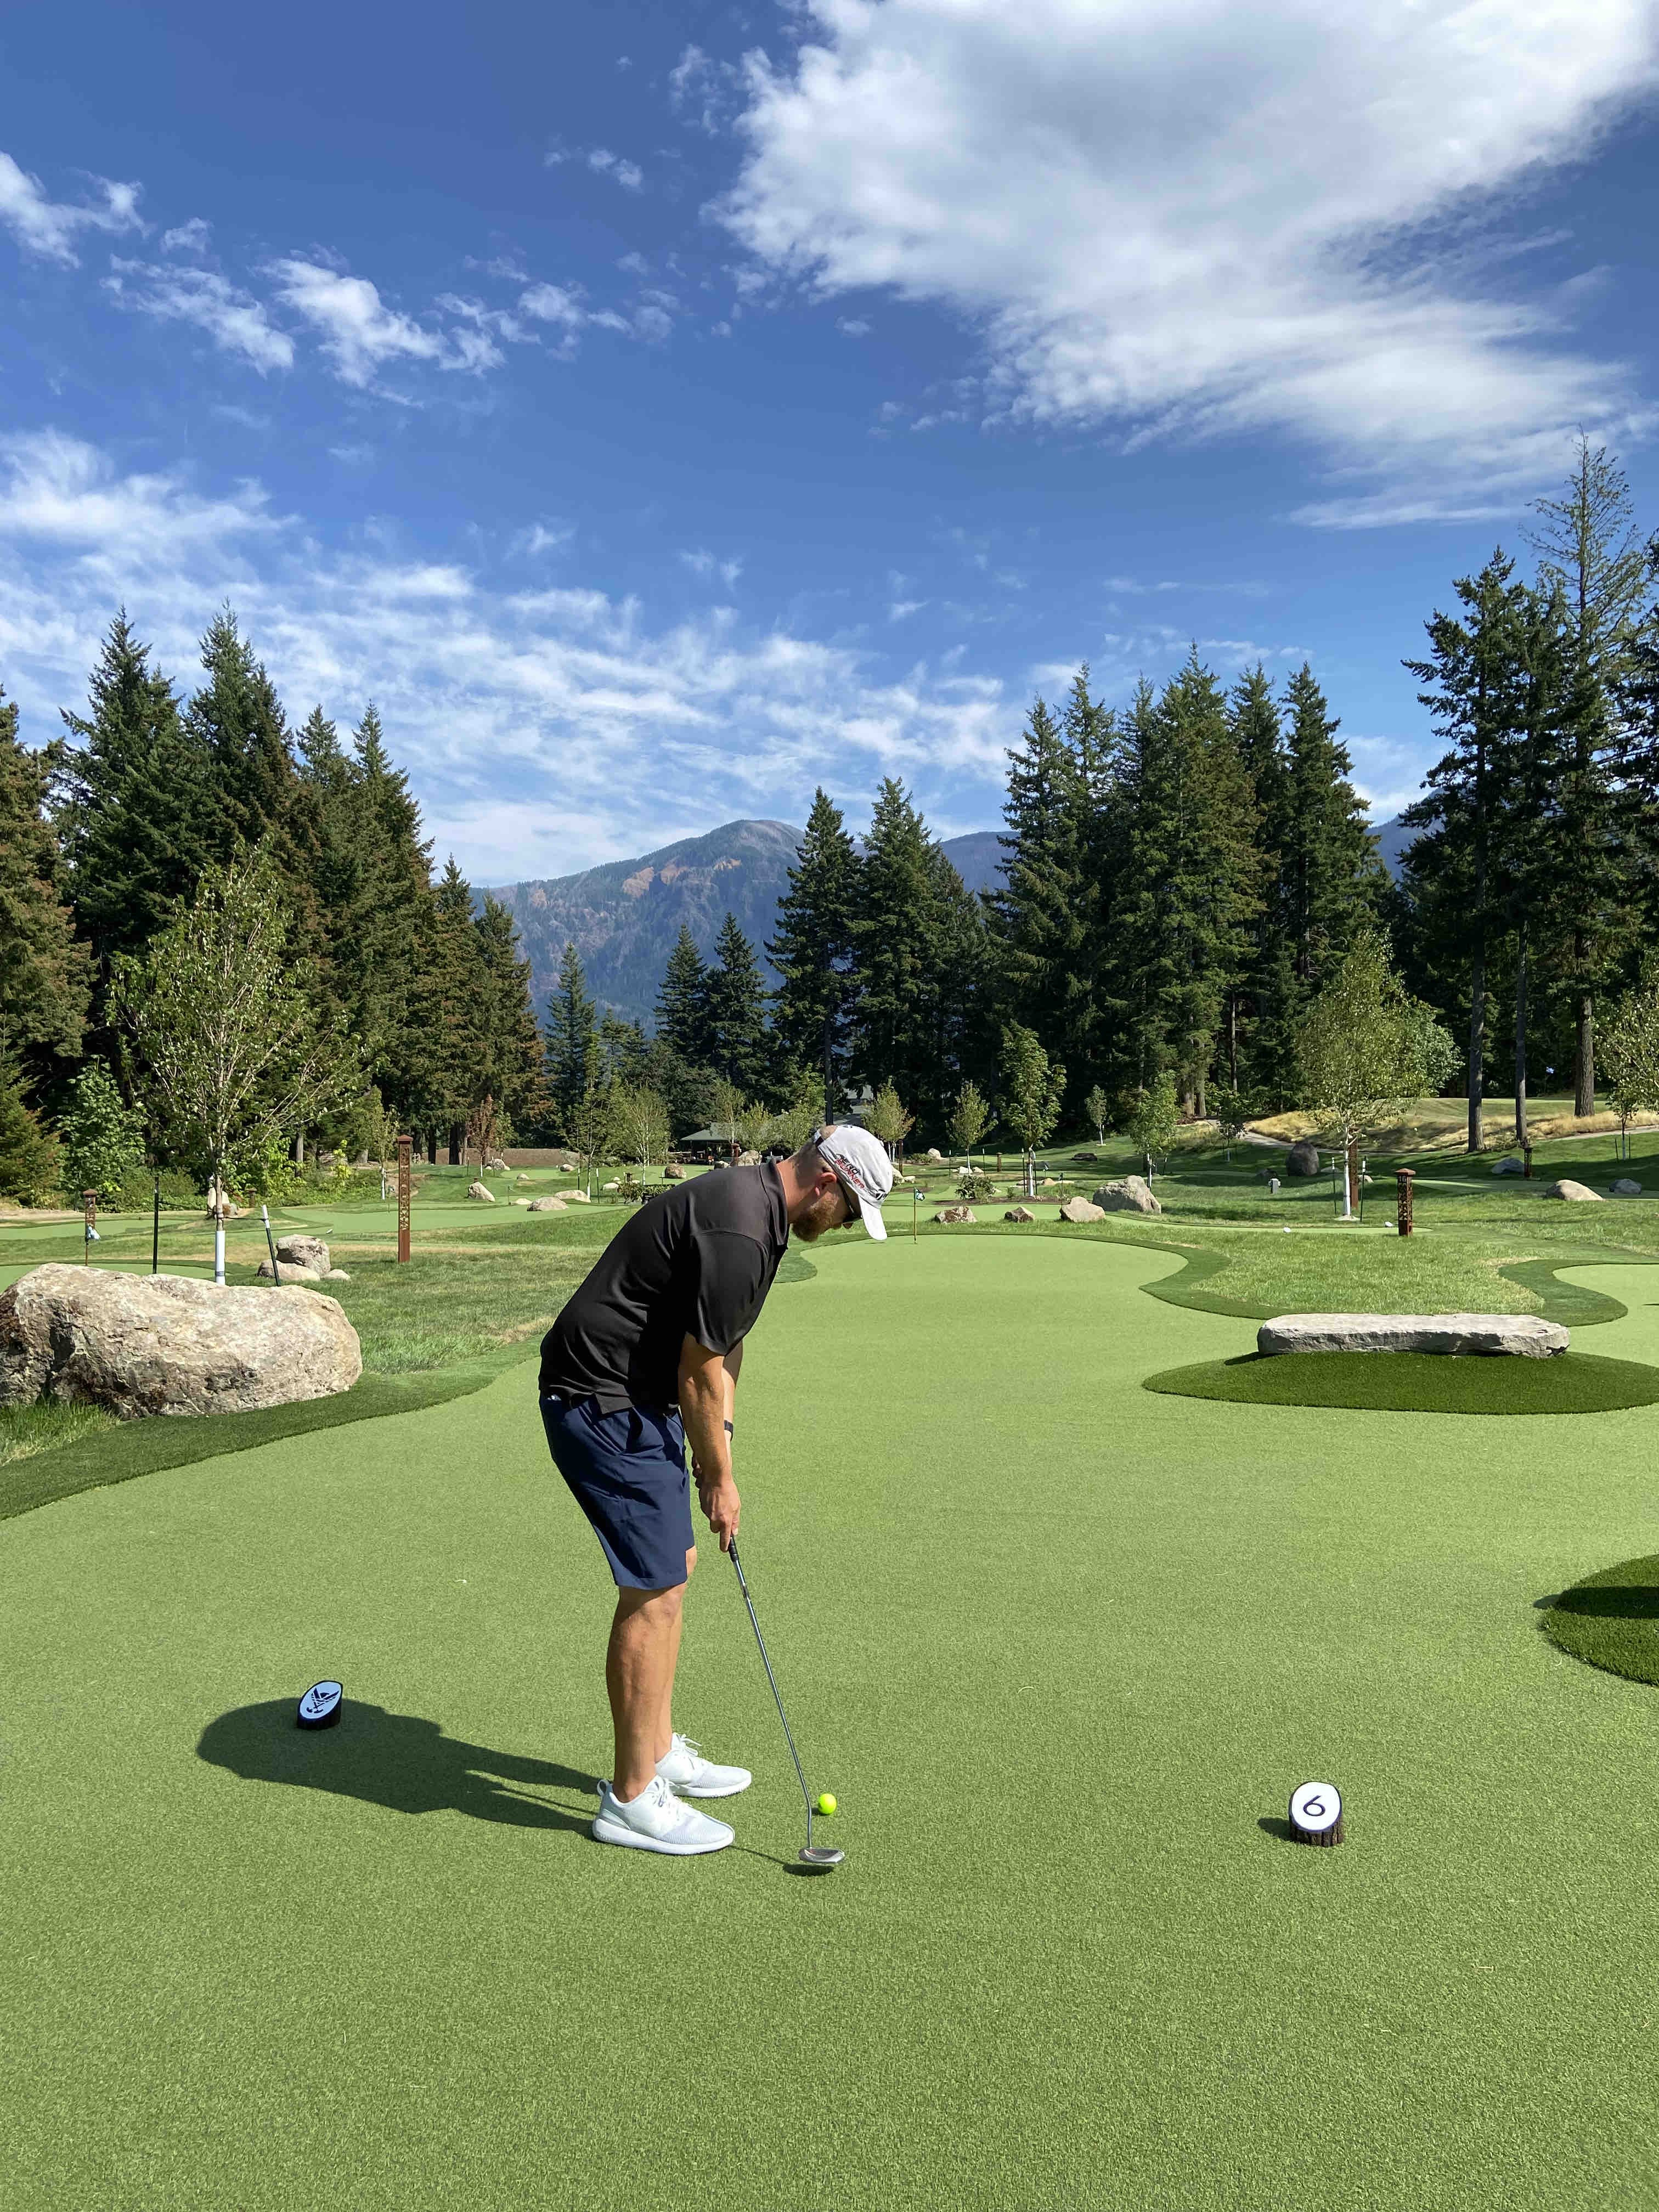 Taking a putt on The Little Eagle 18 Hole Putting Course at Skamania Lodge.